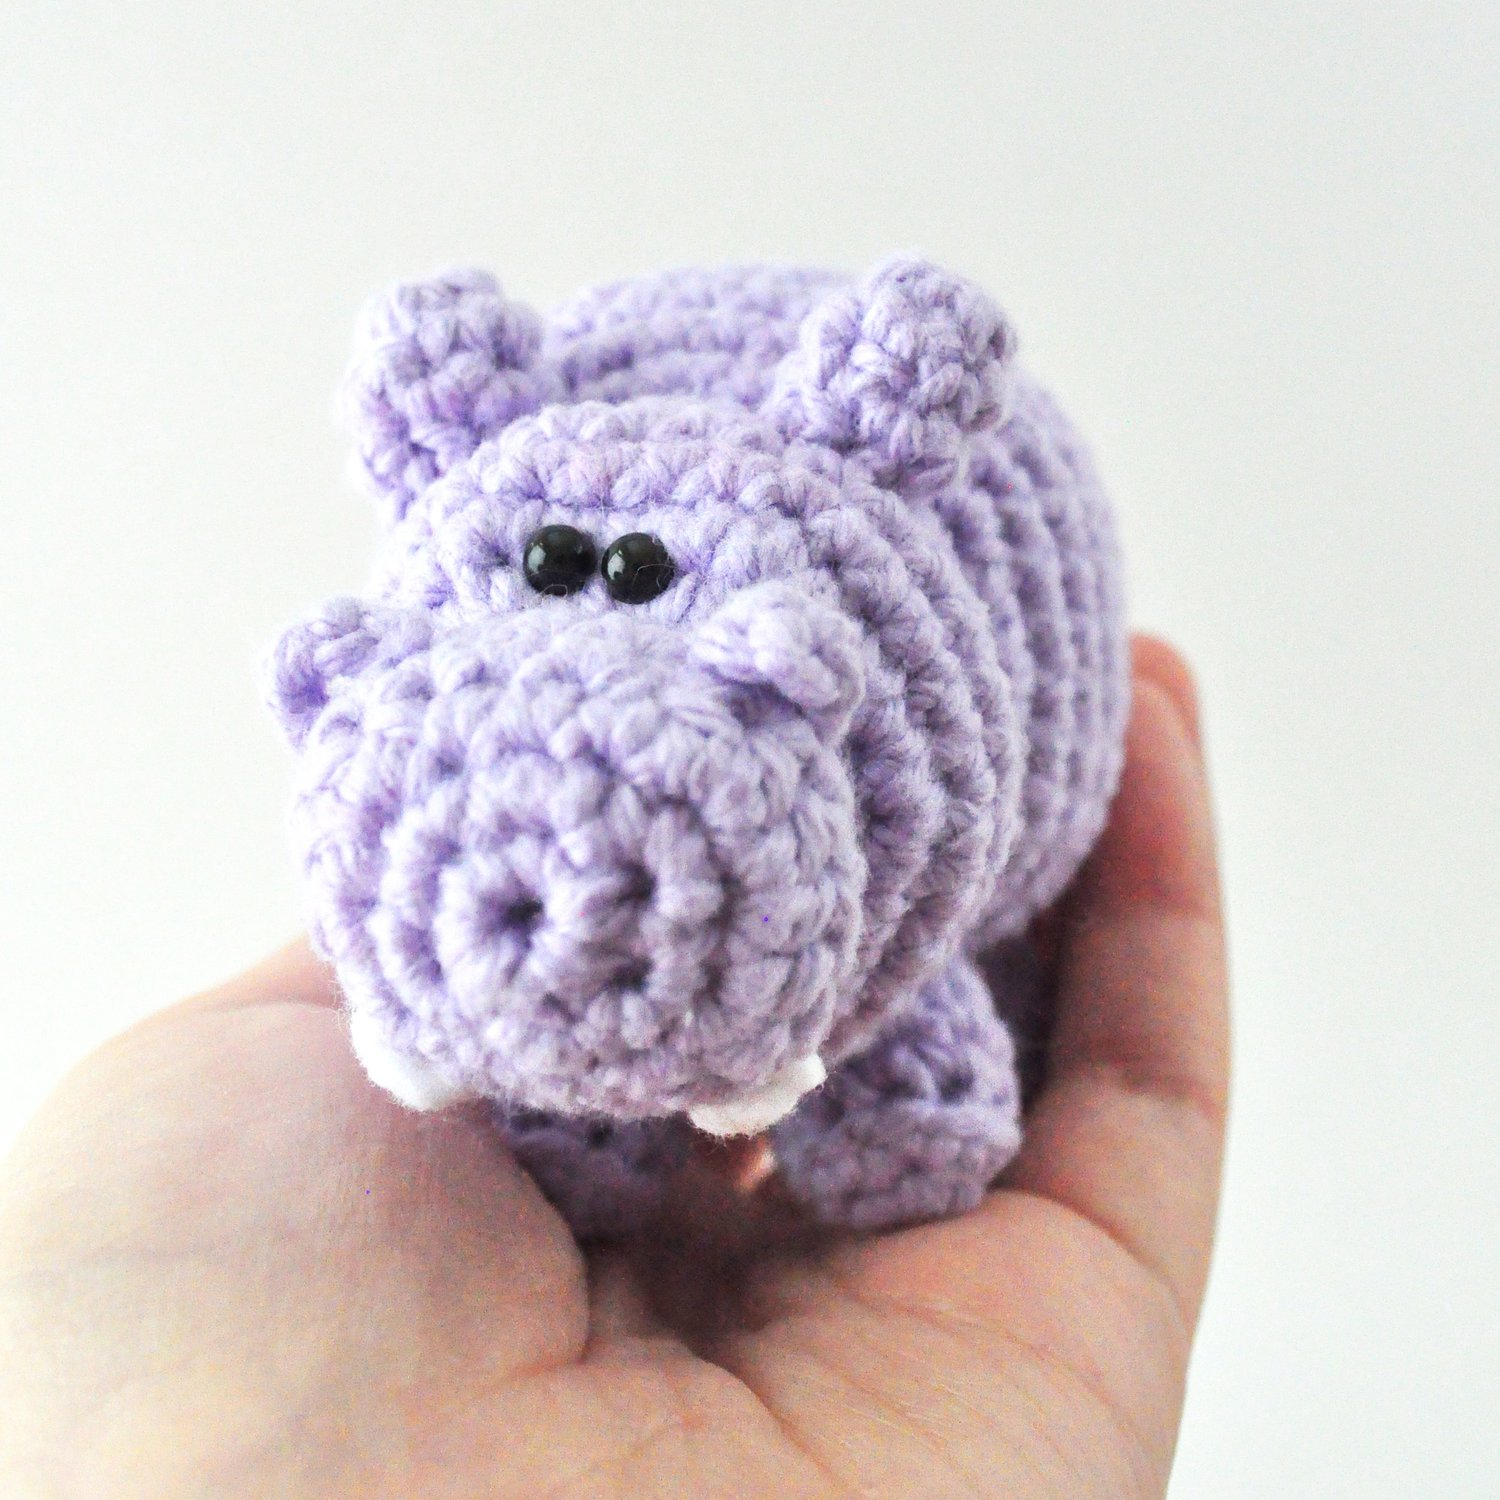 Hippo Crochet Pattern The Pudgy Rabbit